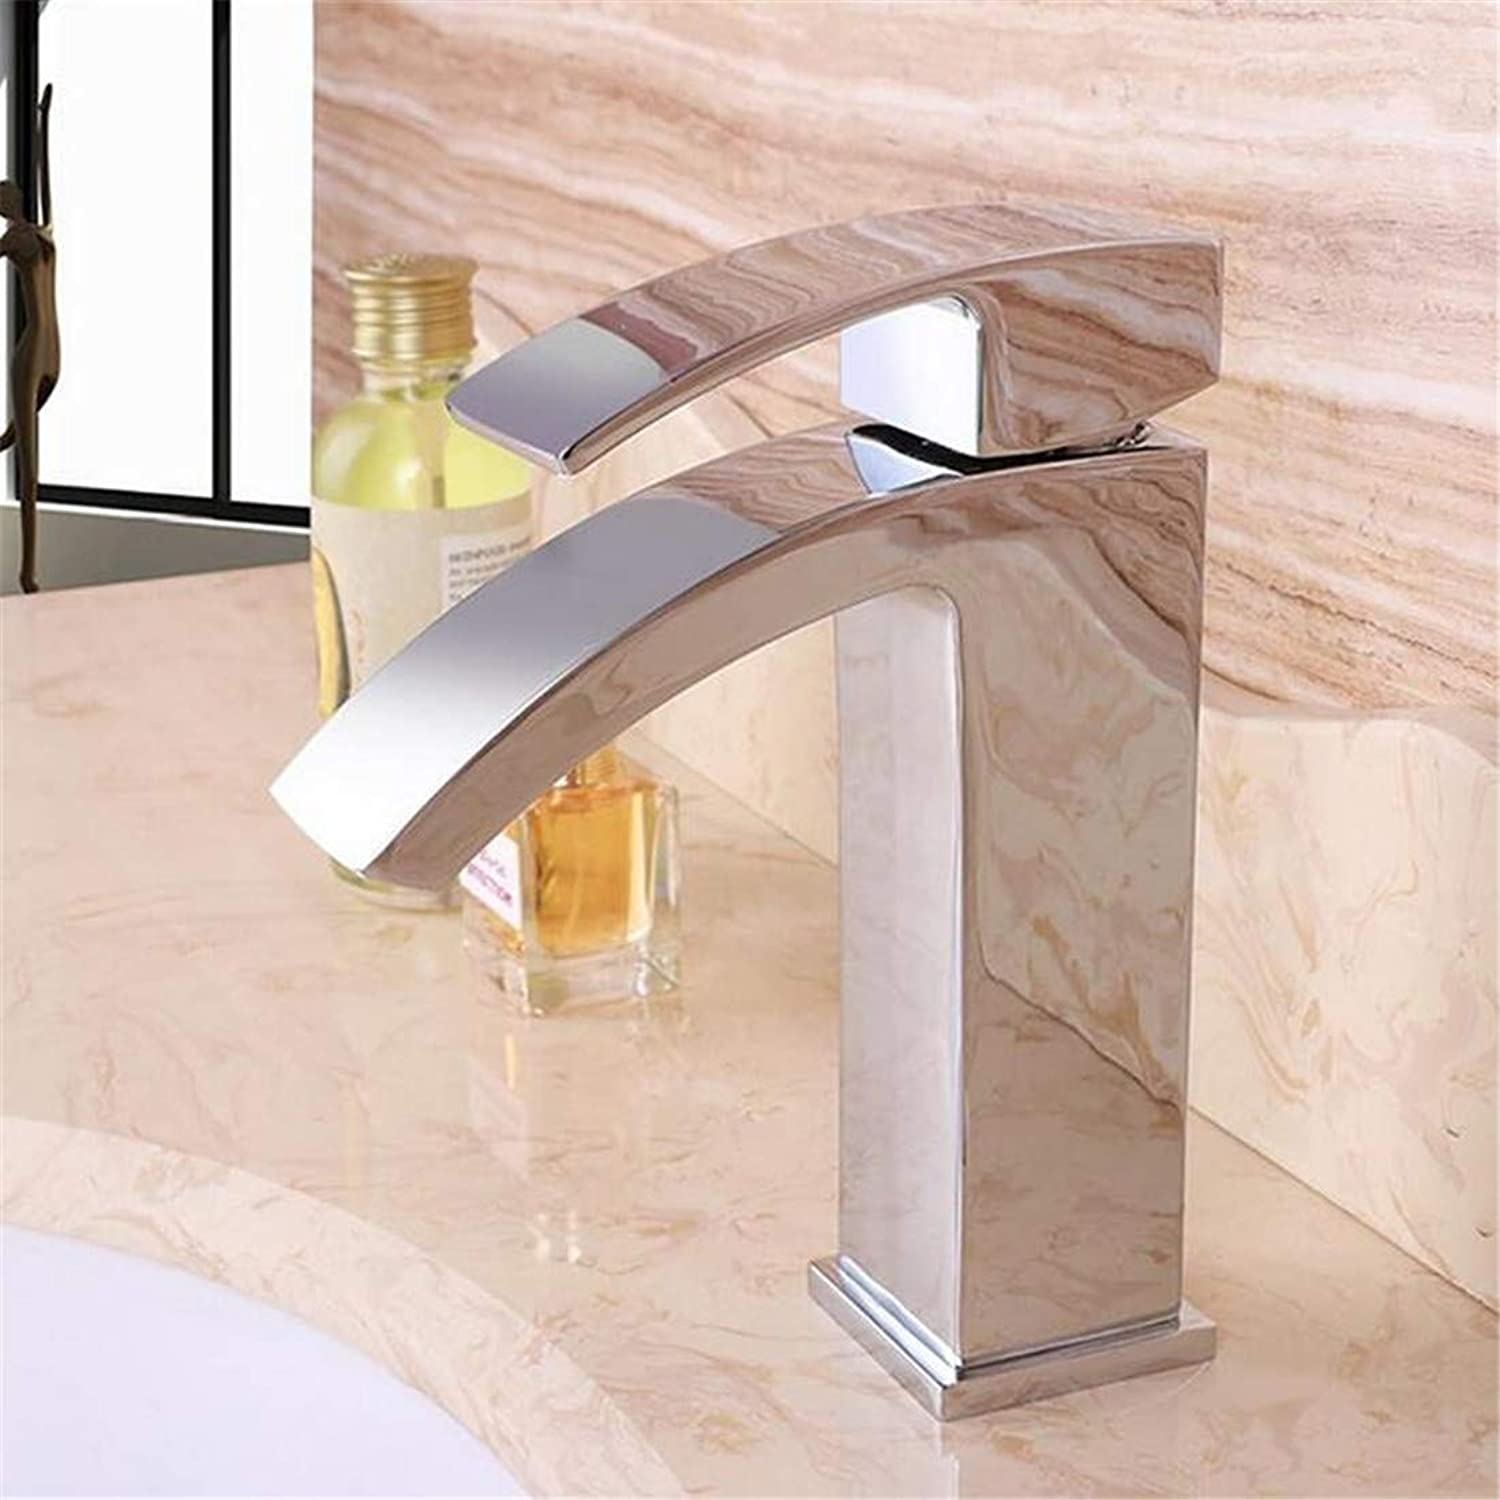 Faucet Vintage Plated Mixer Mixer Faucet Single Handle One Hole Basin Sink Mixer Tap Hot&Cold Kitchen Wash Waterfall Faucet Stainless Steel Chrom